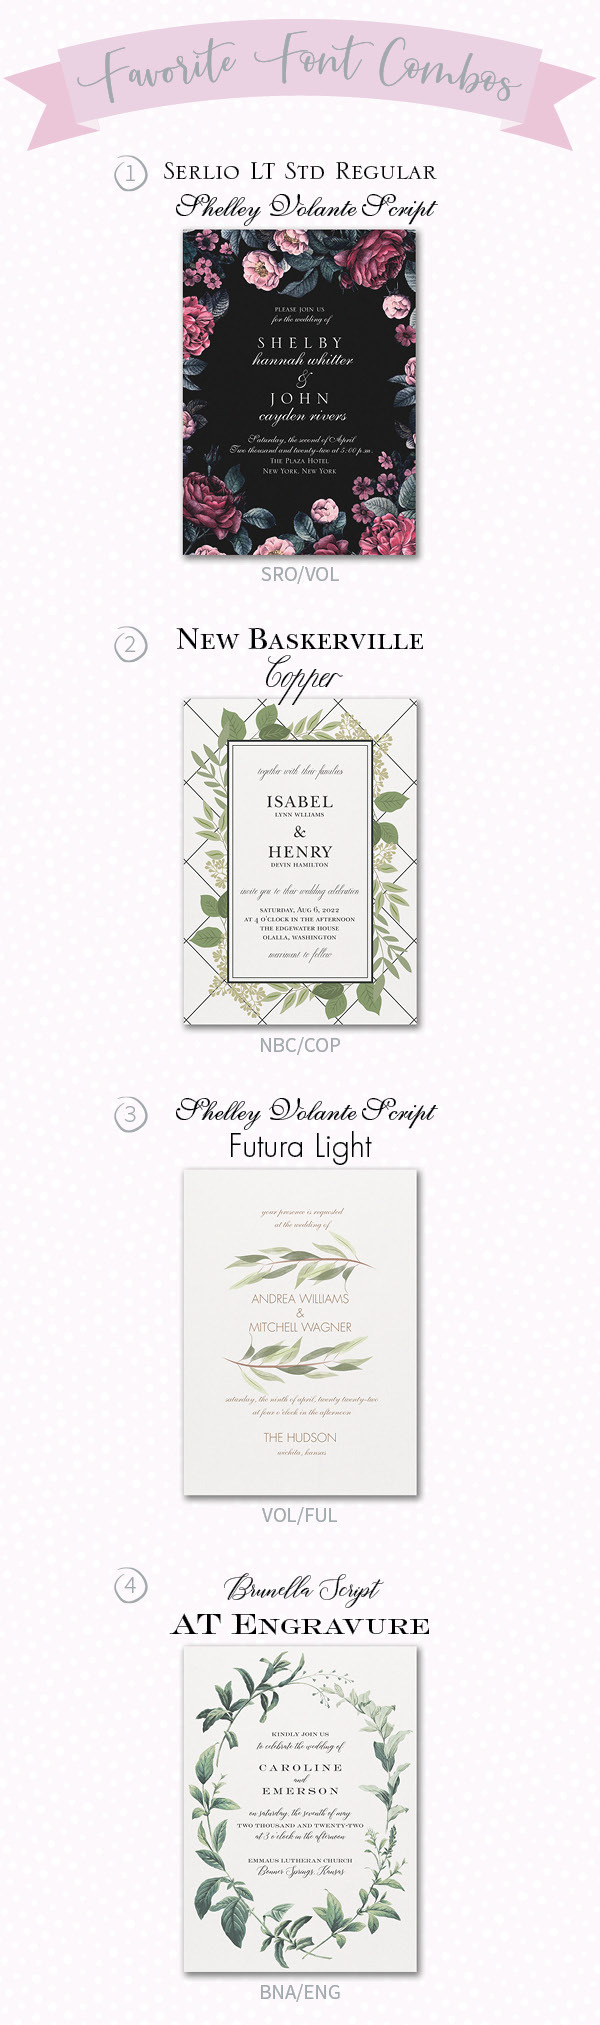 Using Fonts to Enhance the Look of Your Wedding Invitations